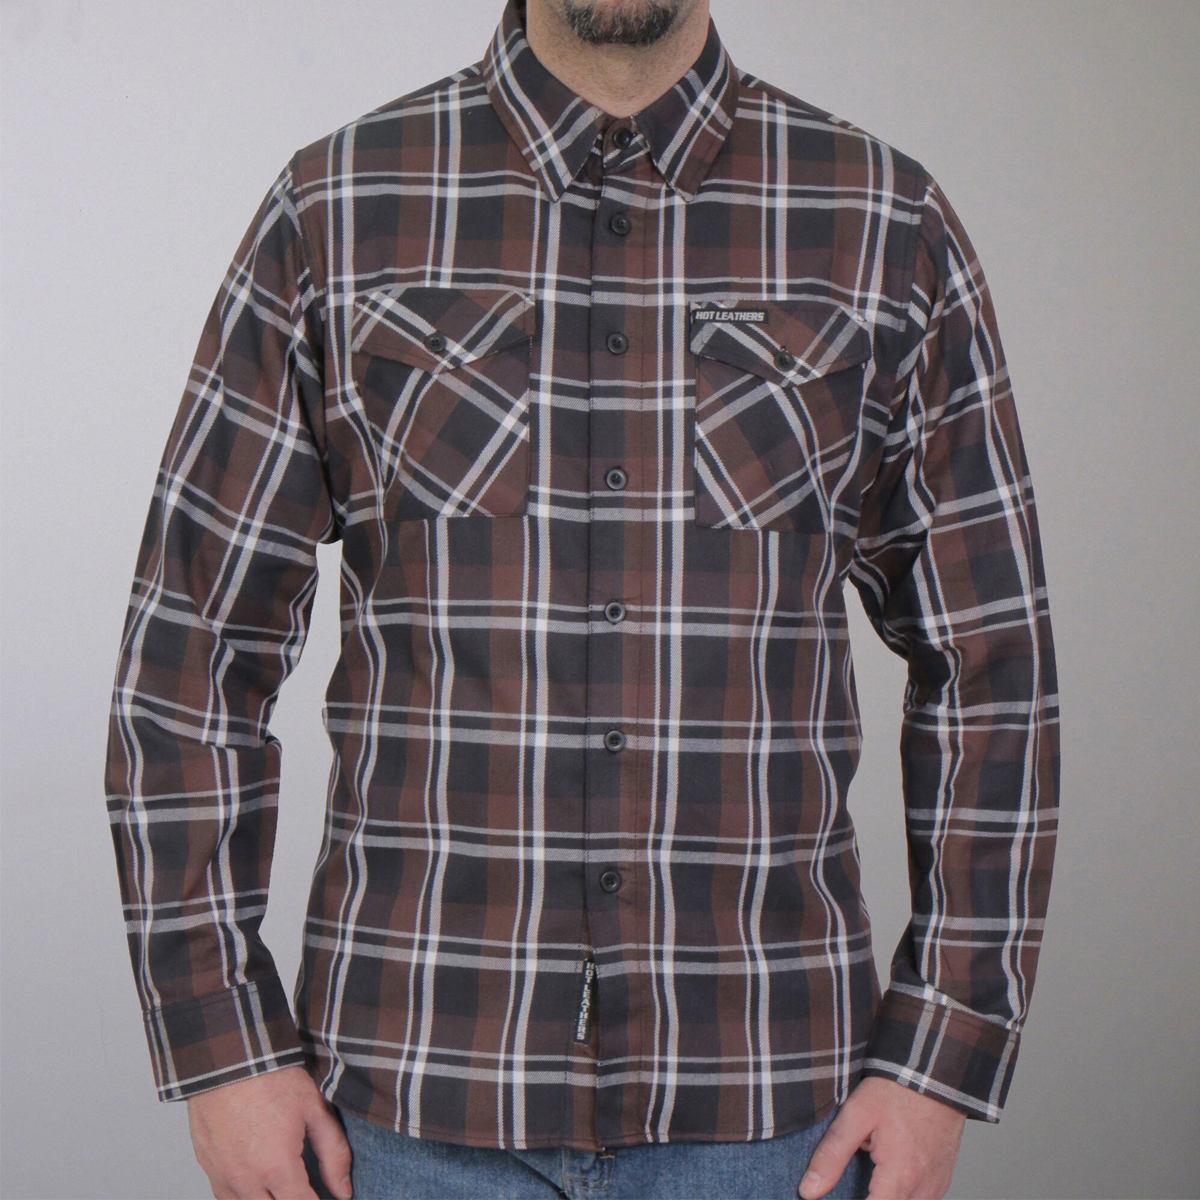 Hot Leathers Brown Black And White Long Sleeve Flannel